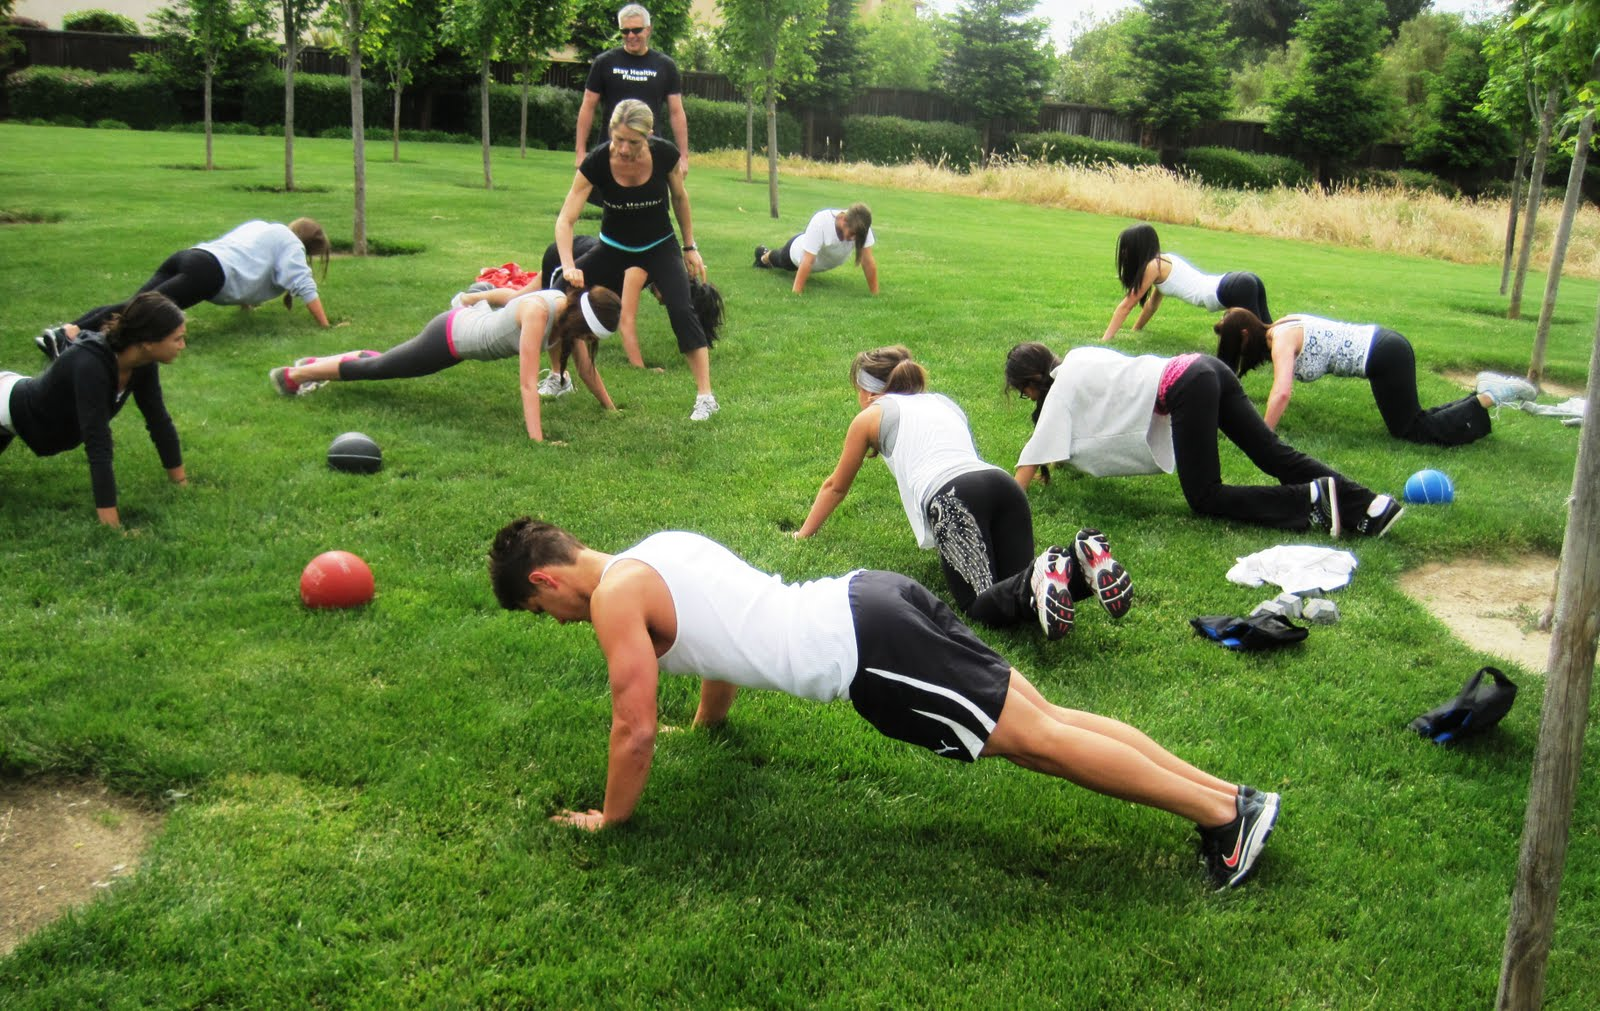 What To Expect From An Outdoor Bootcamp | The Training Room